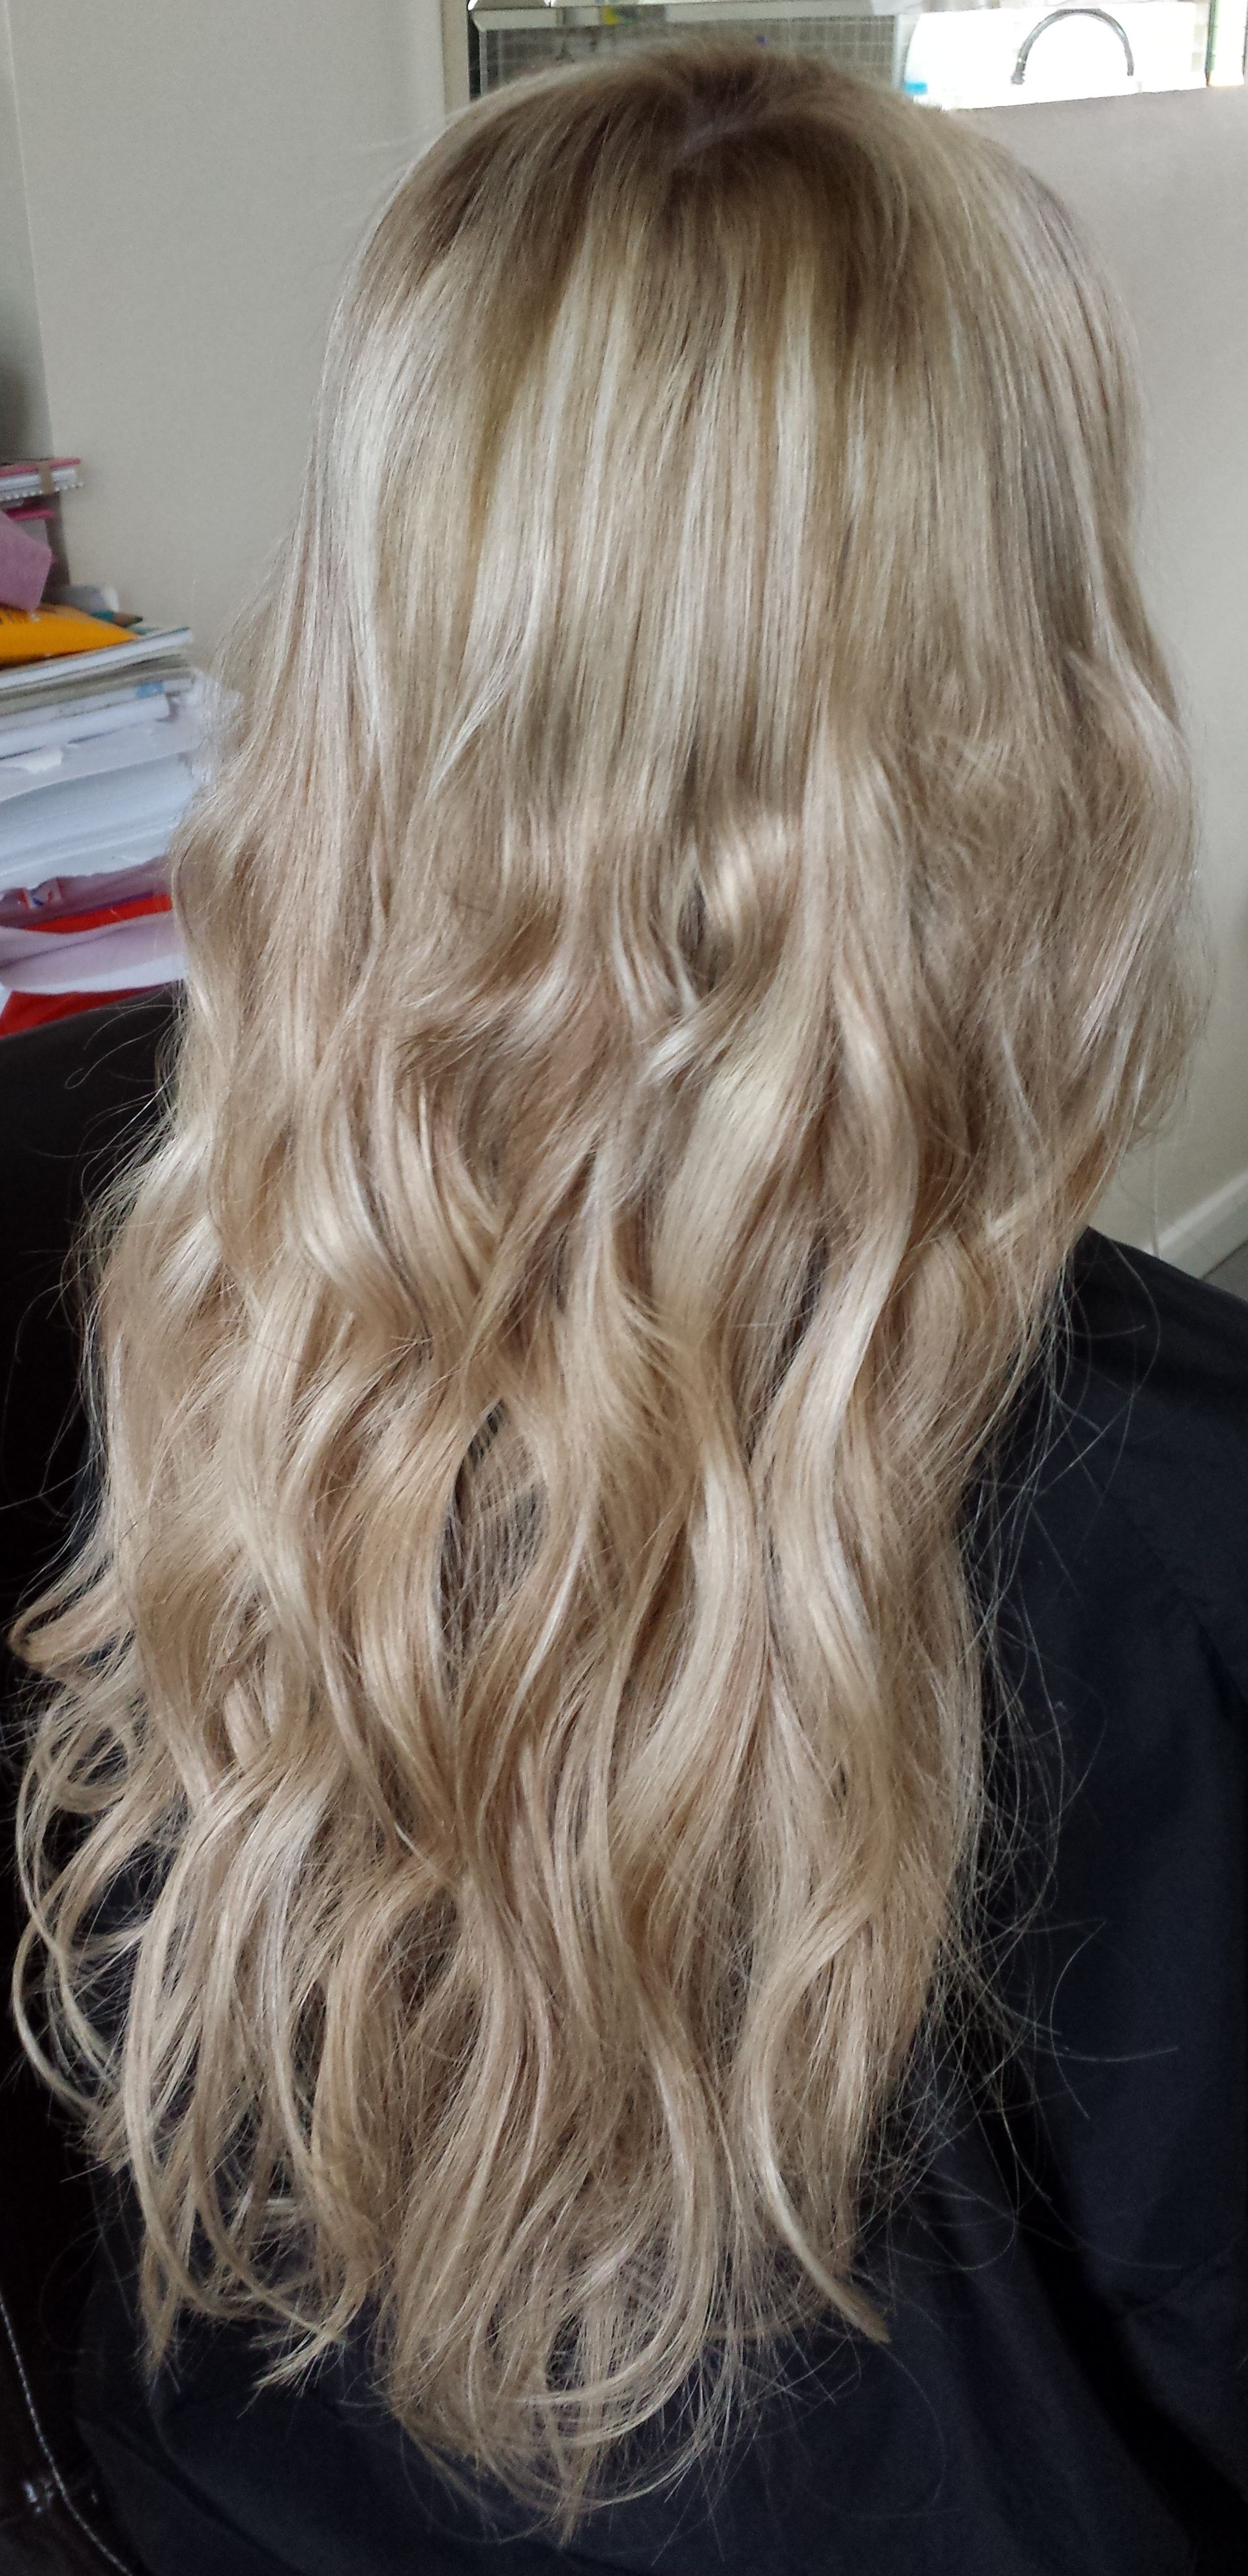 Pre Bonded Hair Extensions With A Soft Wave Goldilocks Pinterest